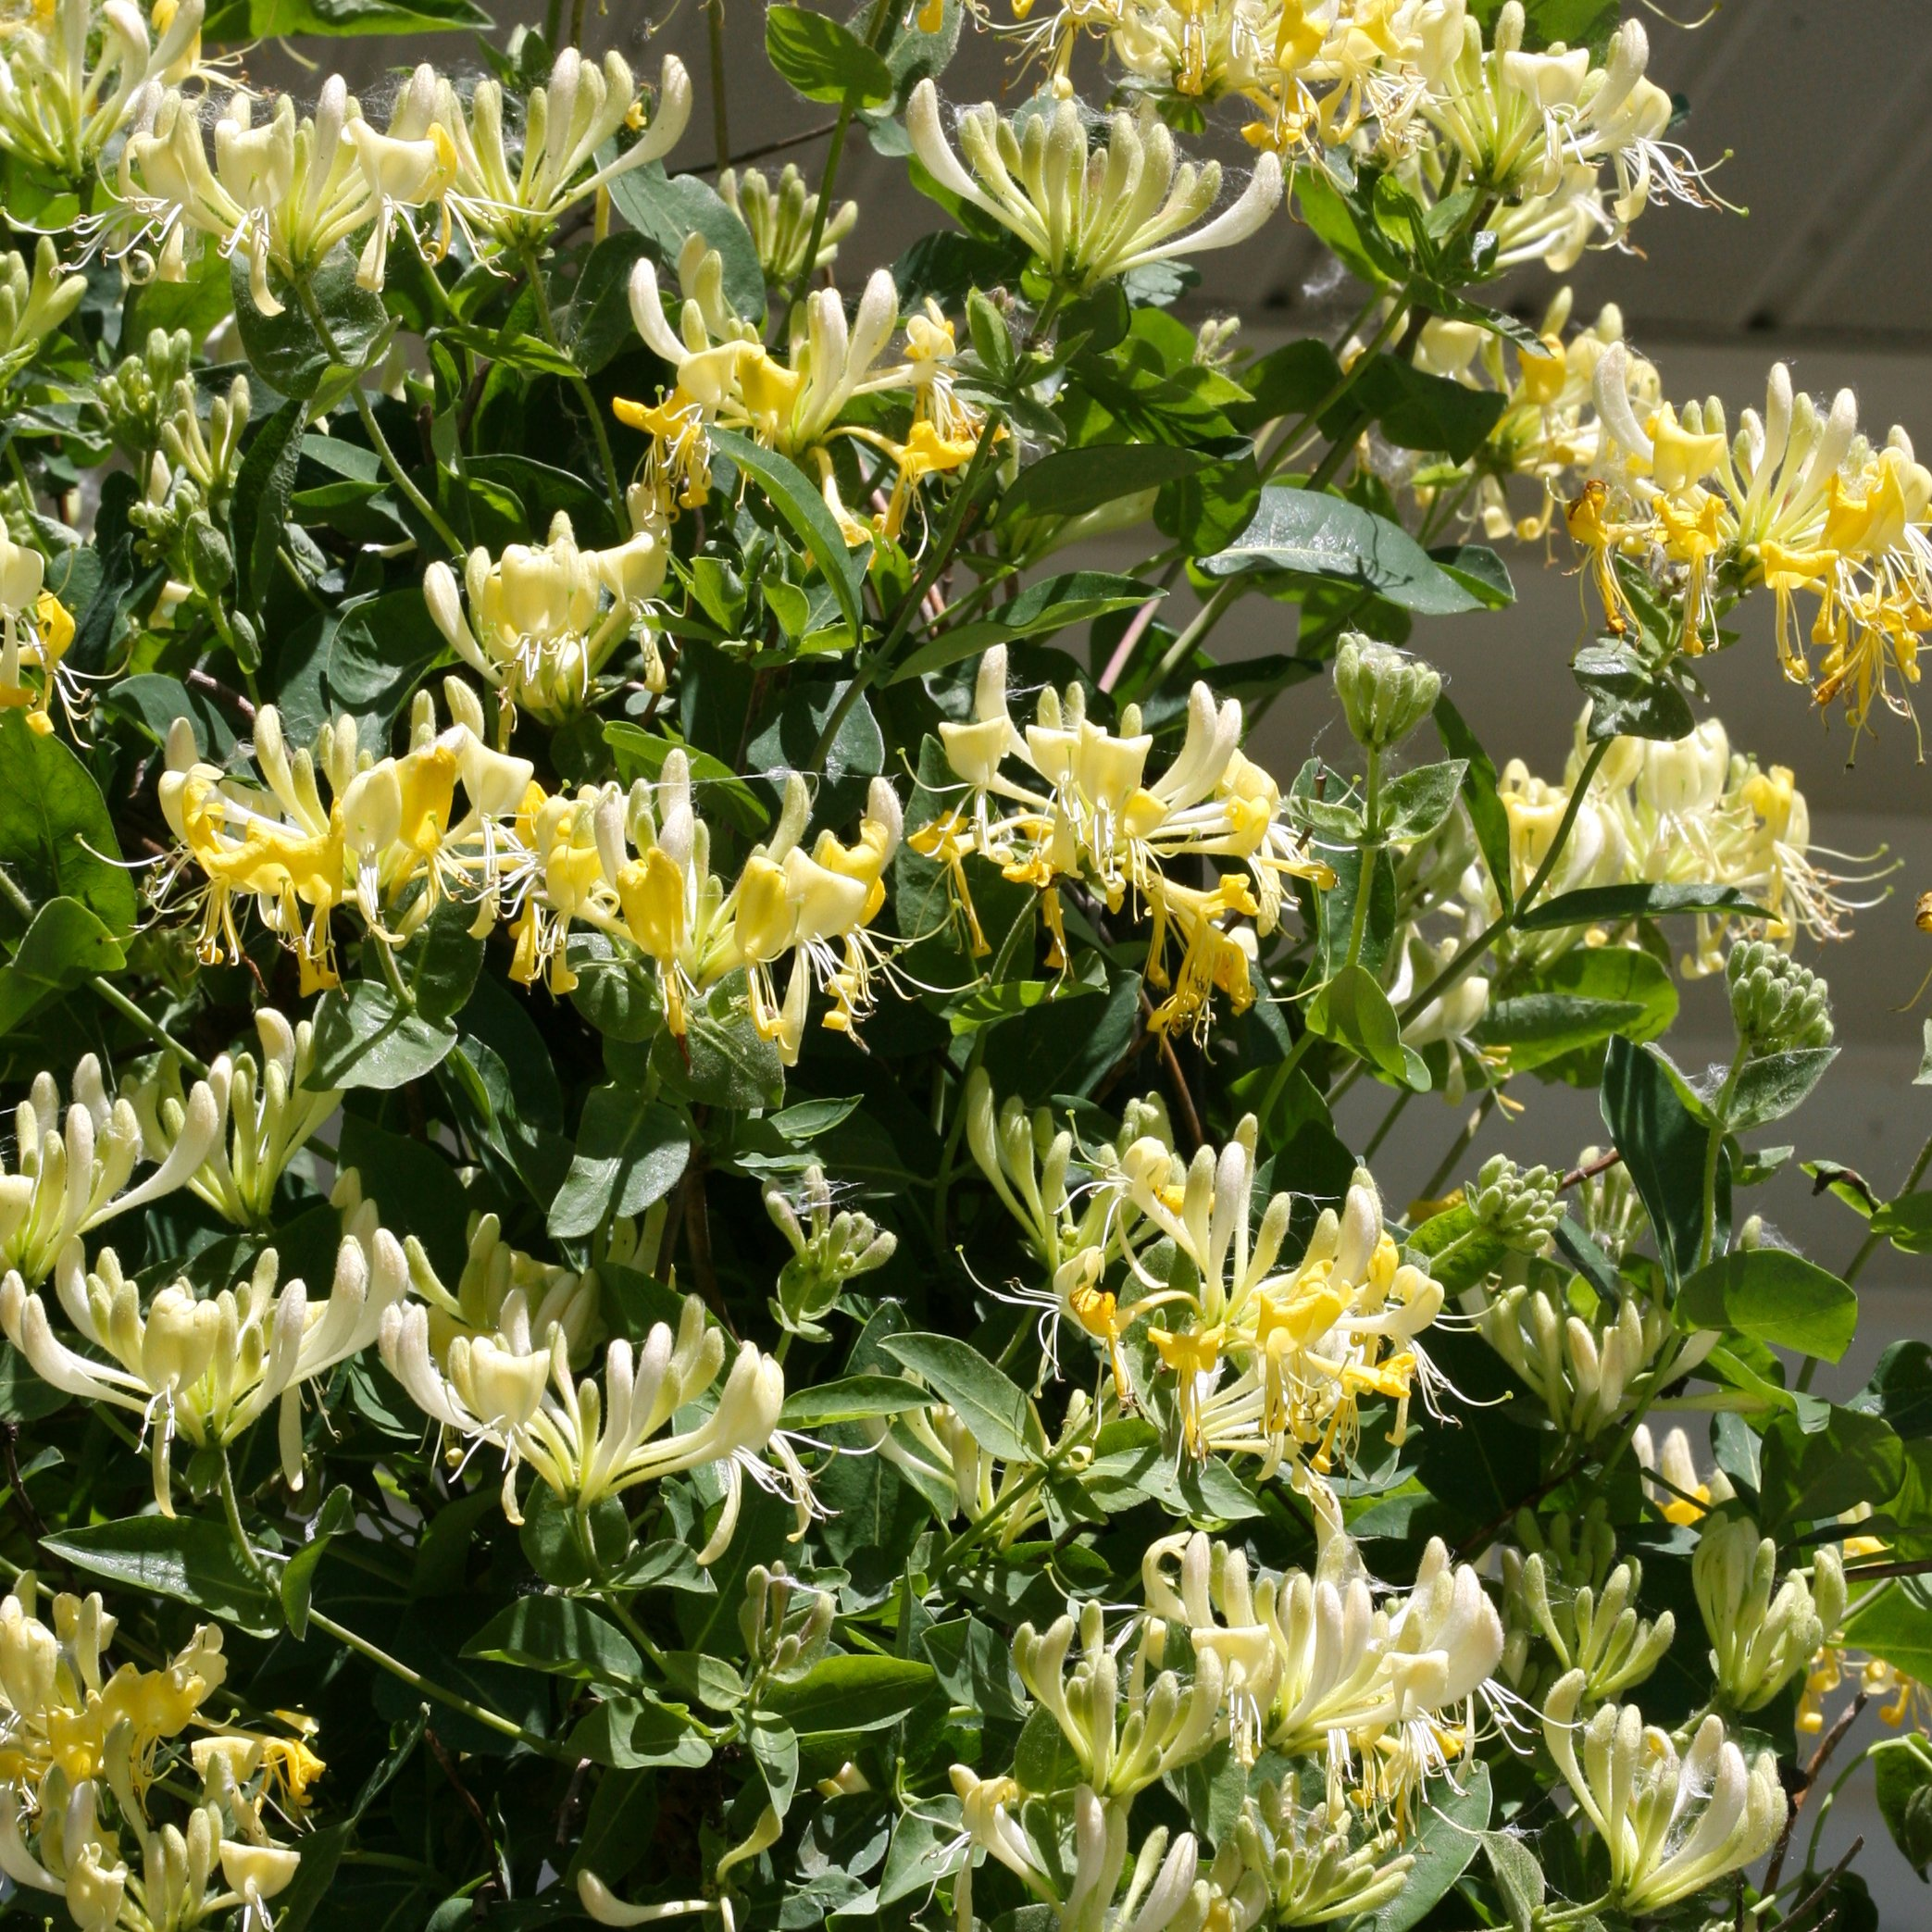 Scentsation Honeysuckle (Lonicera) Live Shrub, Yellow Flowers and Red Berries, 1 Gallon by Proven Winners (Image #8)